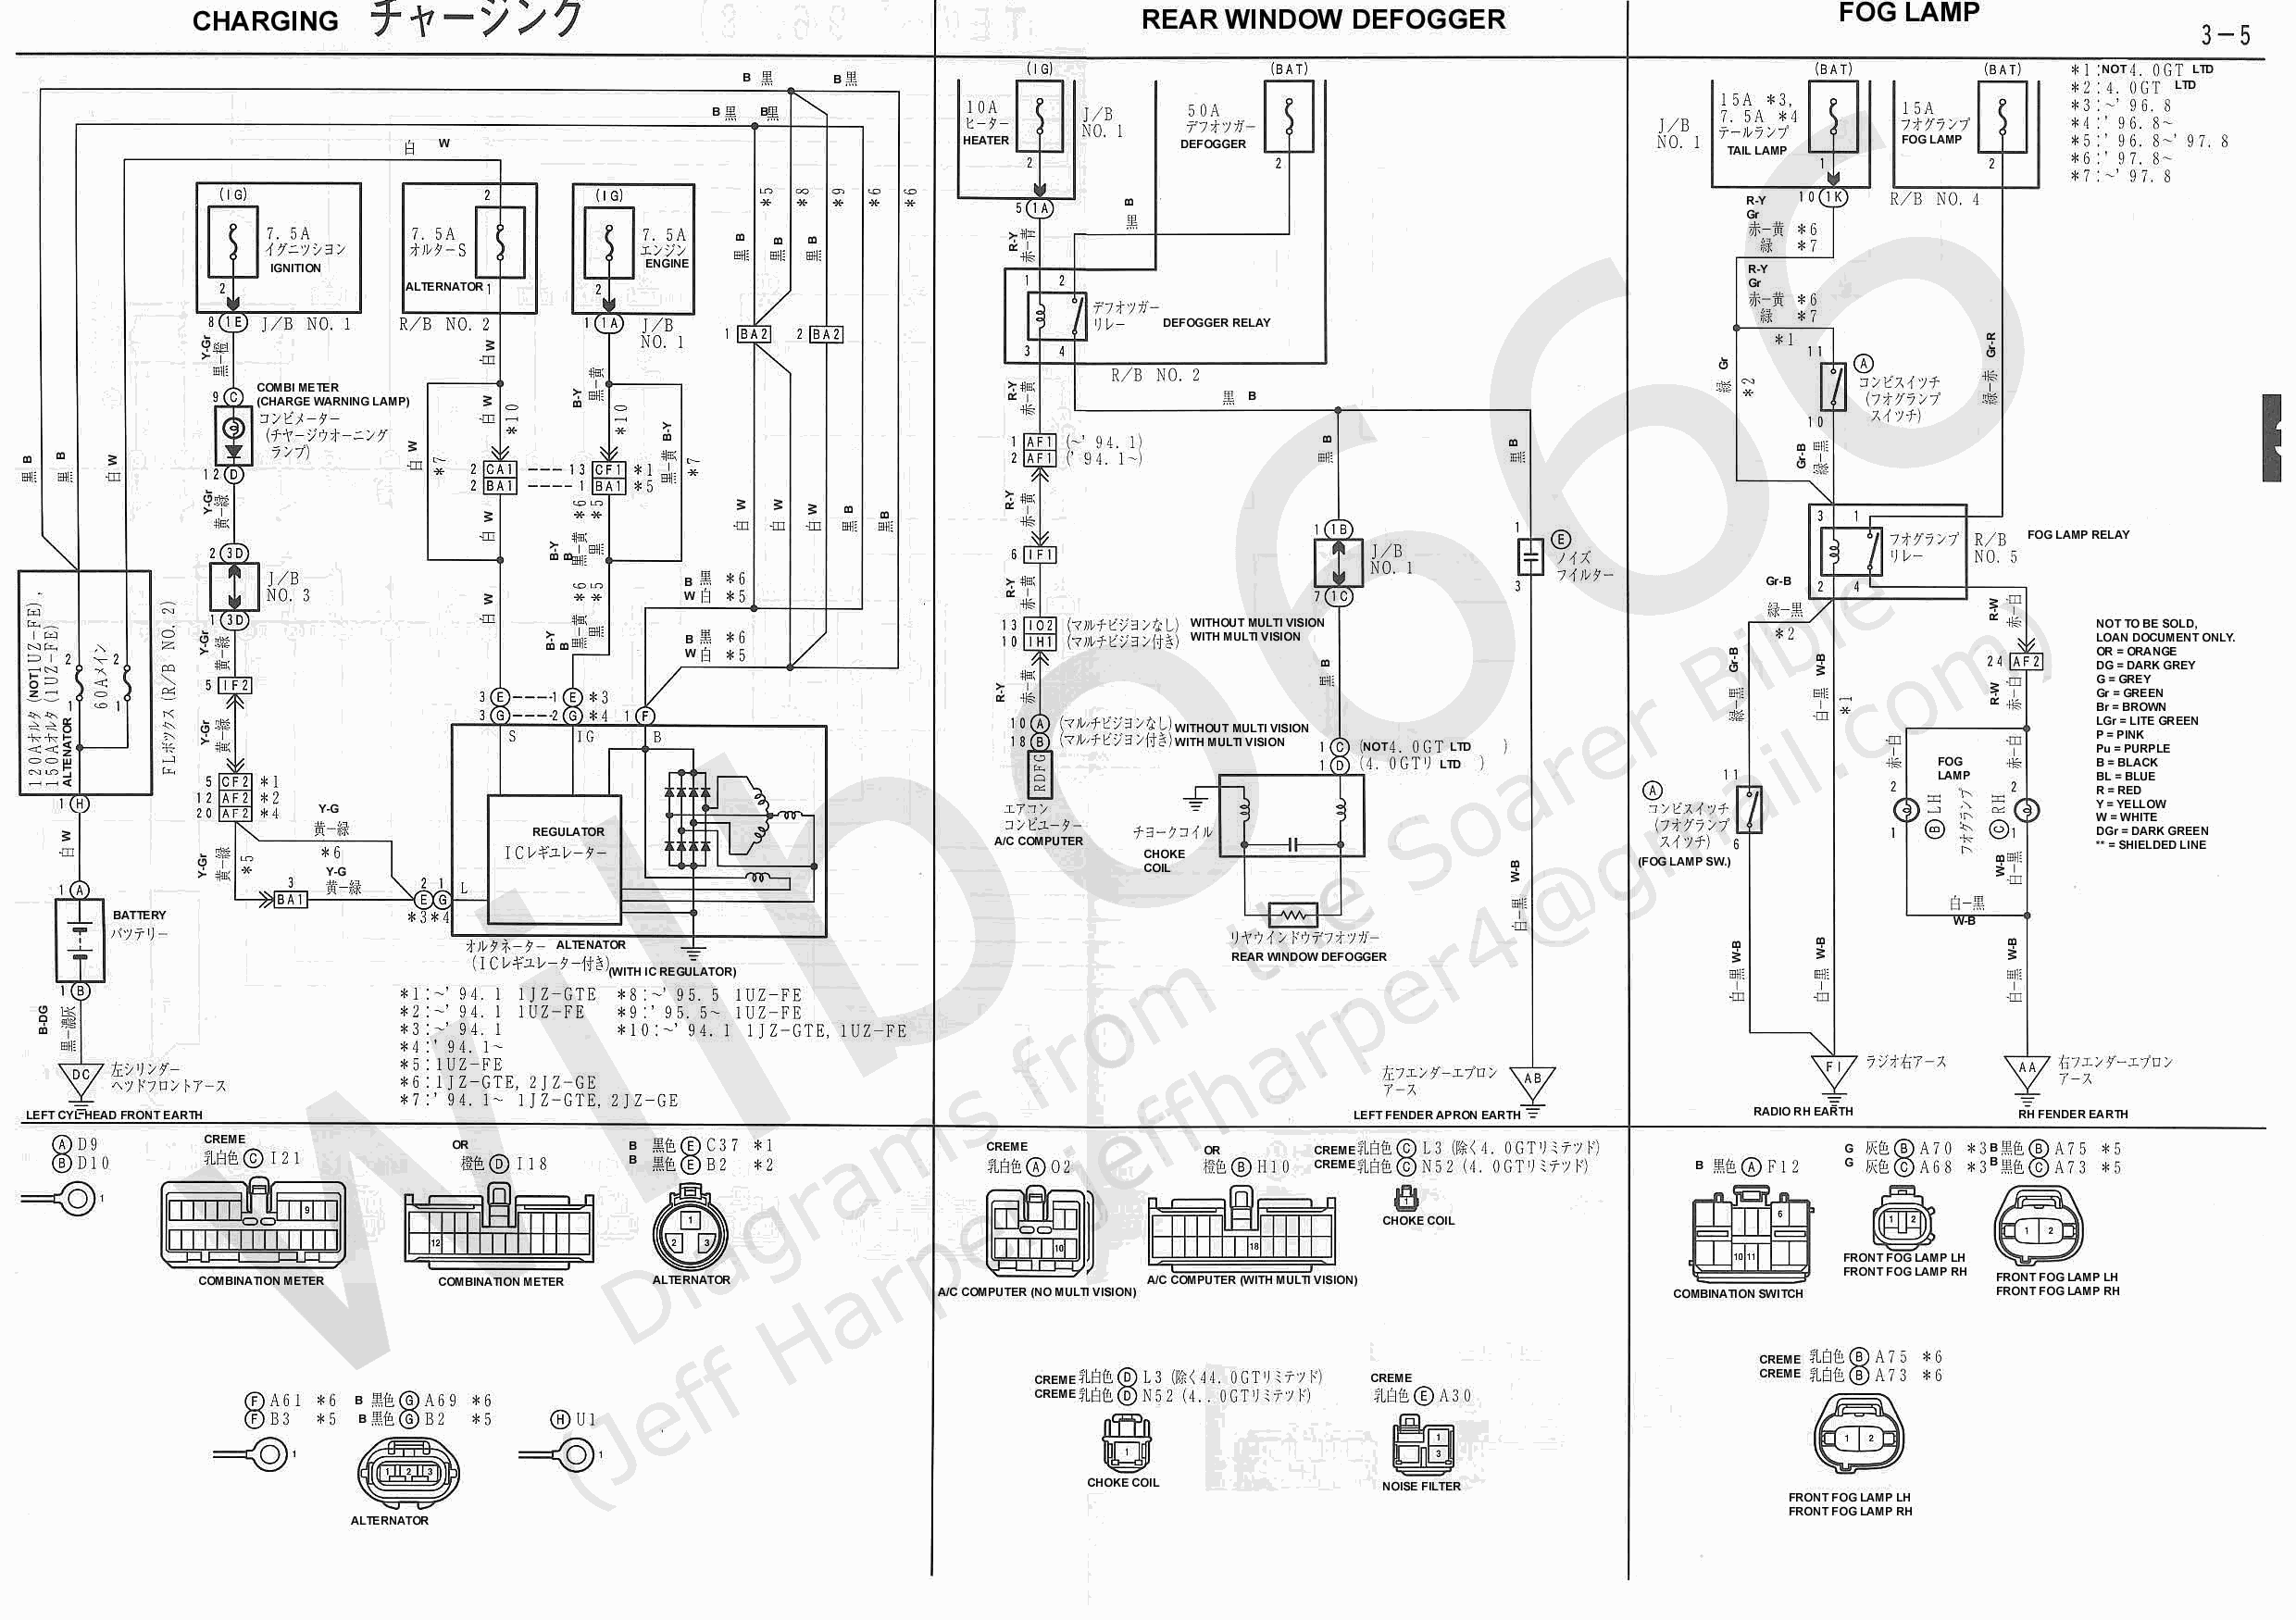 ae86 wiring harness   19 wiring diagram images